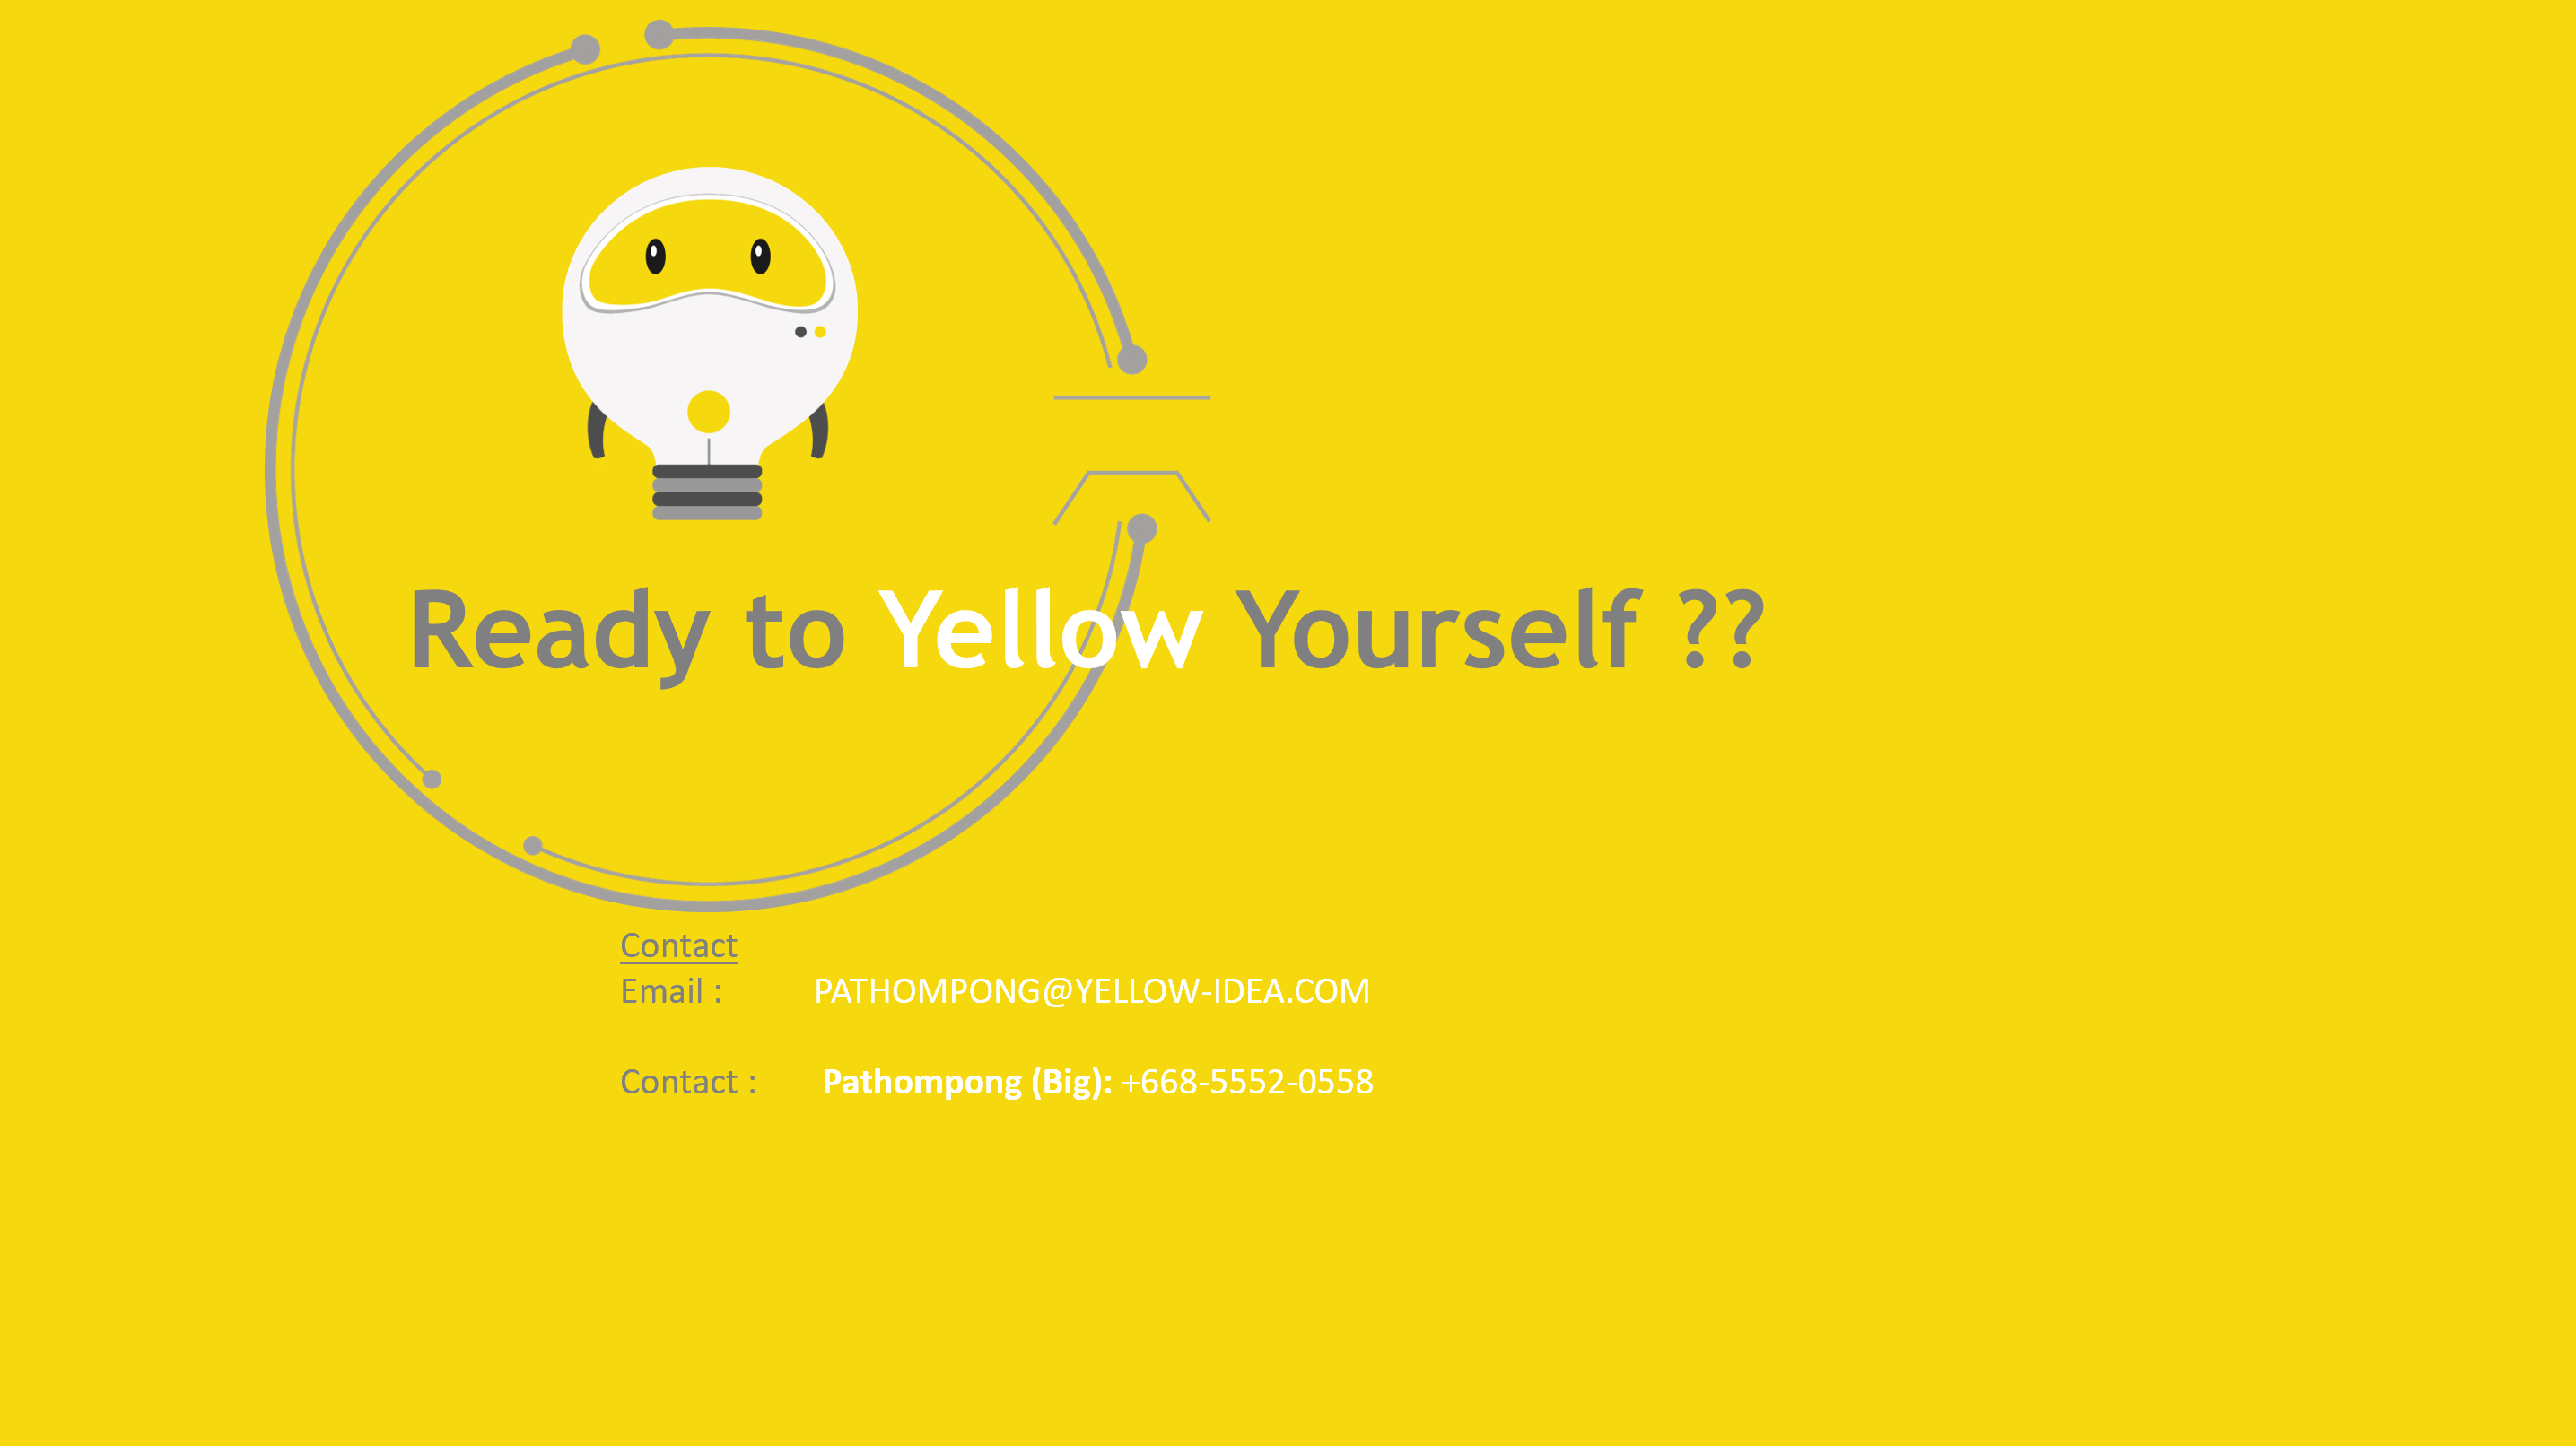 Yellow Idea Contact